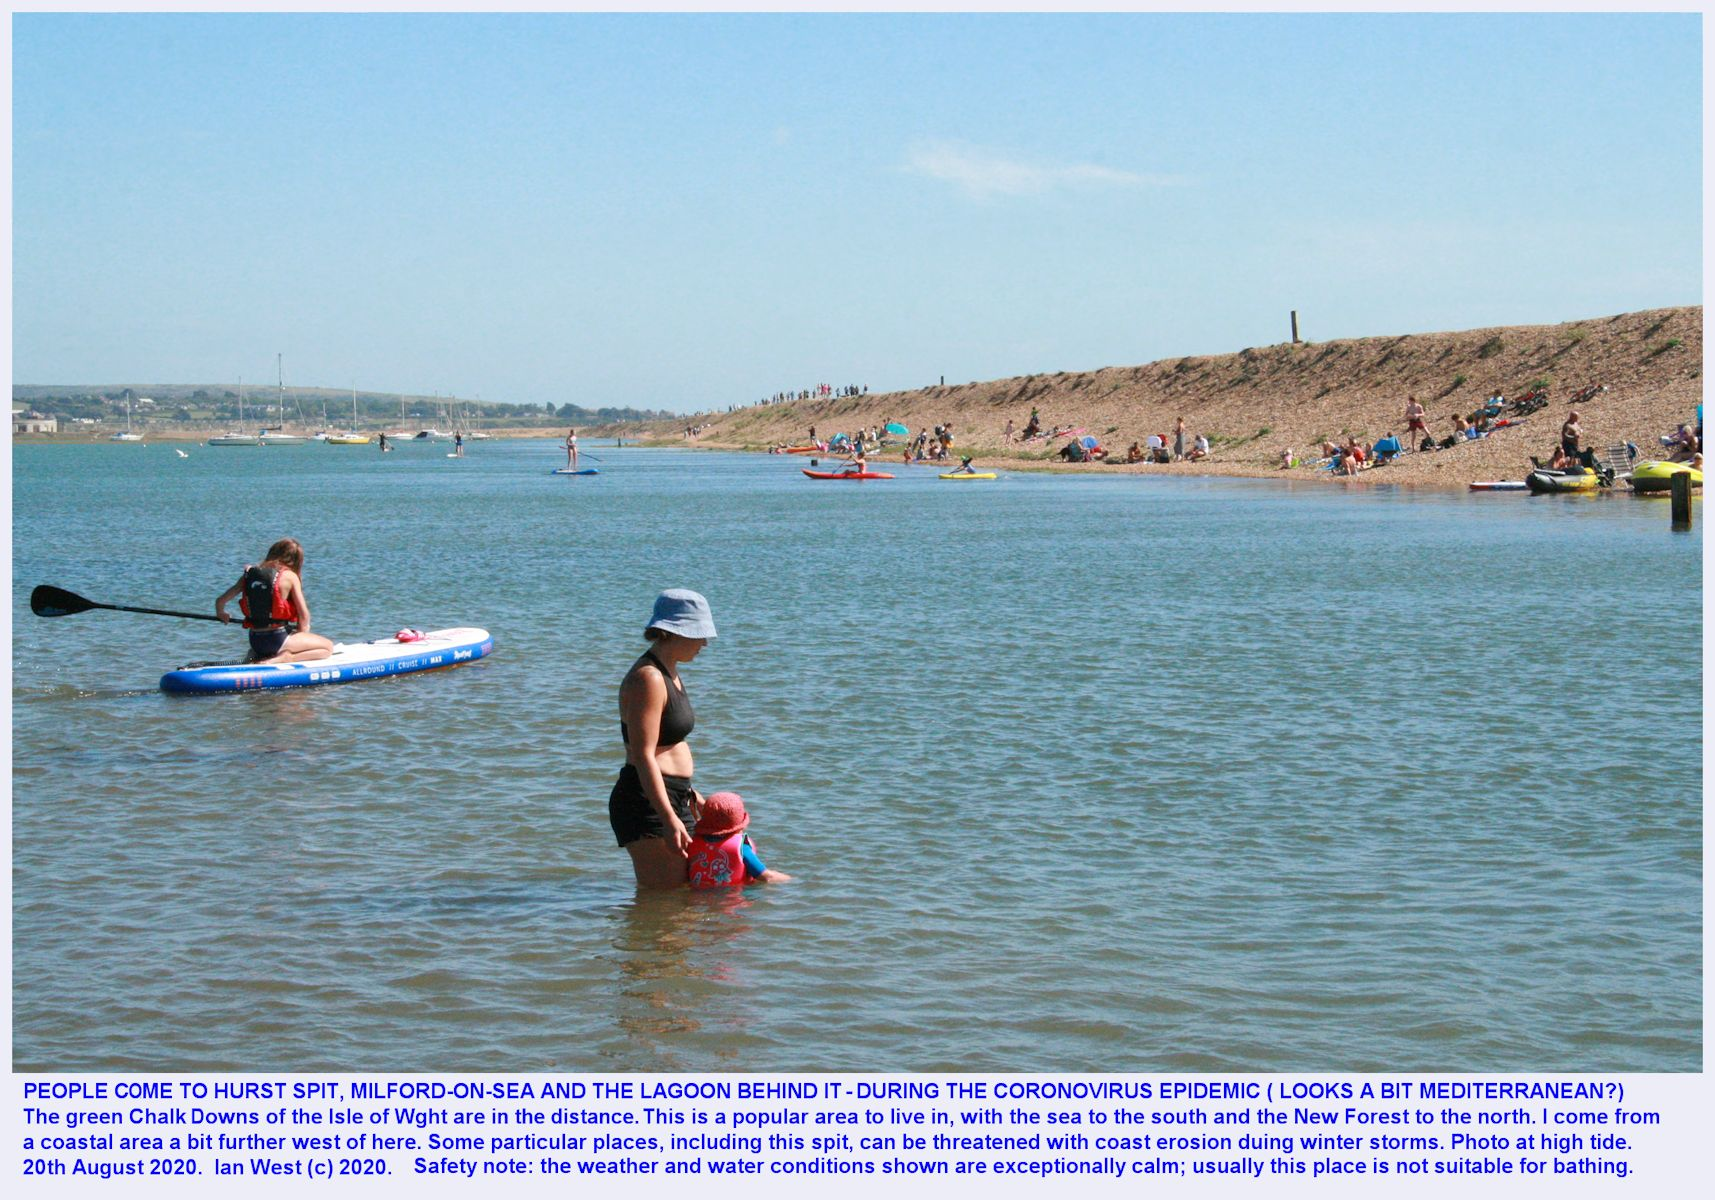 At the landward part of Hurst Spit, behind the bank and near the small footbridge, with some people paddling in the estuary water at high tide, during the Coronavirus Epidemic, August 2020